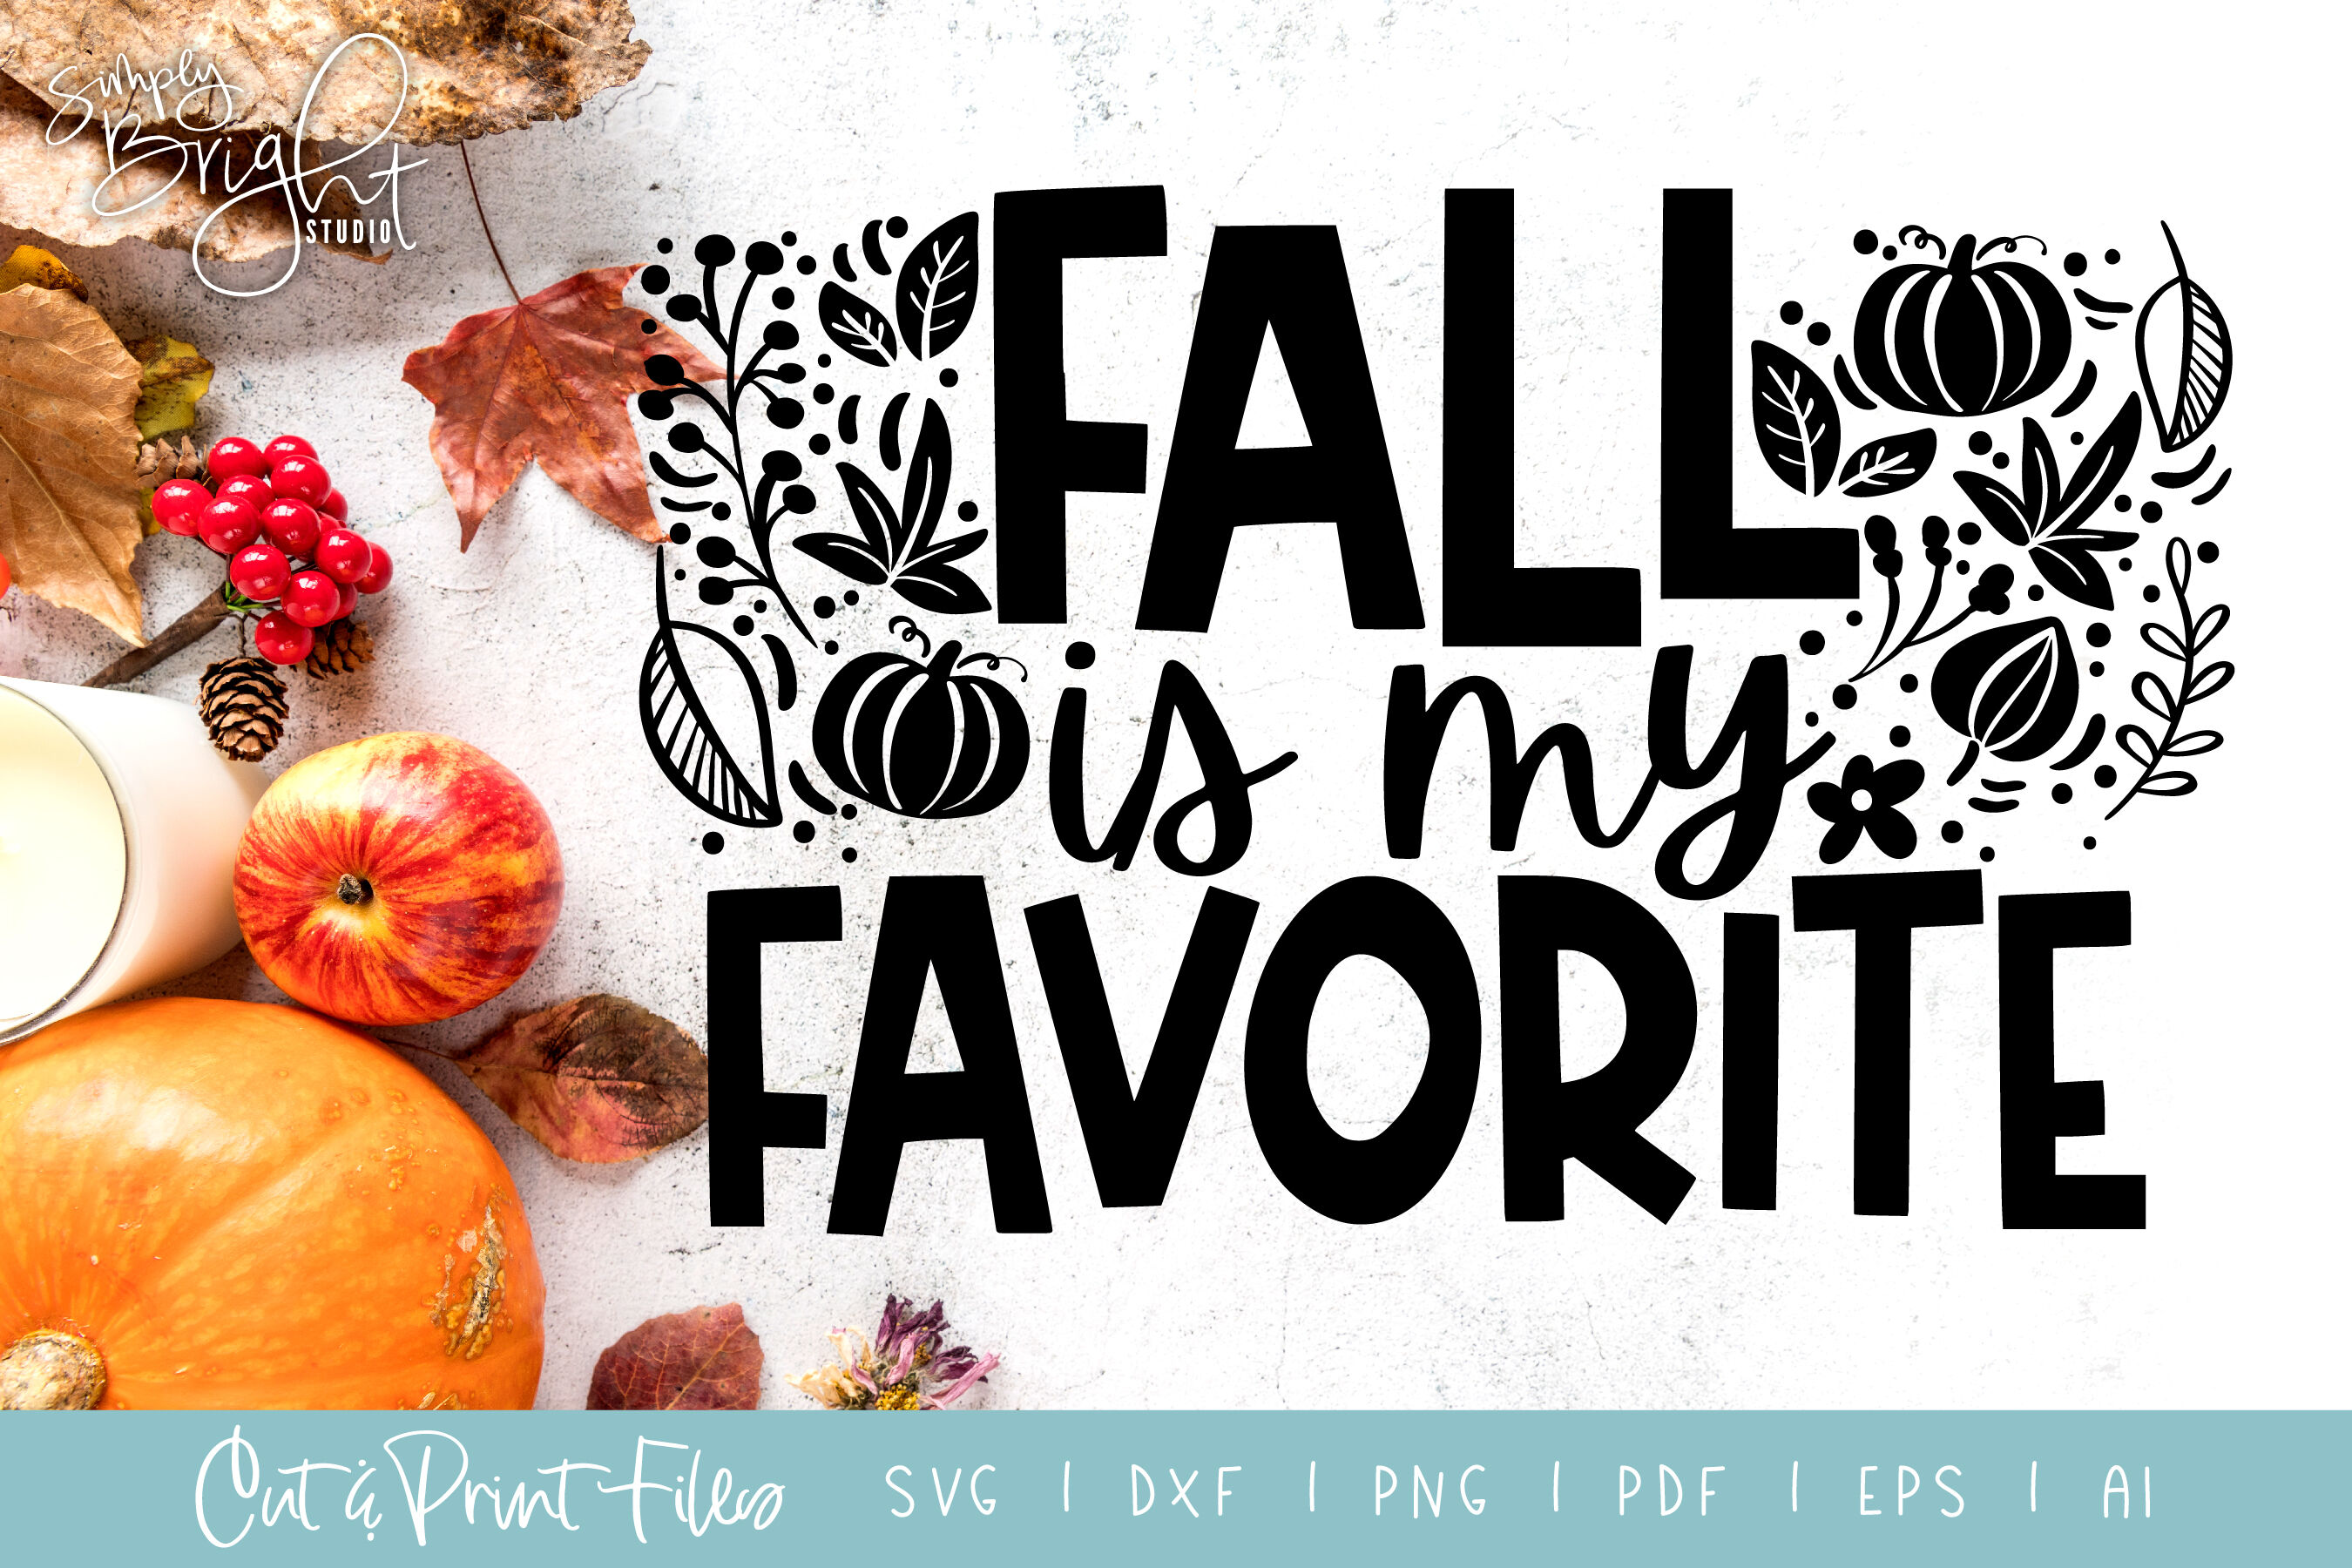 Fall Is My Favorite Dxf Svg Png Pdf Cut Print Files By Simply Bright Studio Thehungryjpeg Com